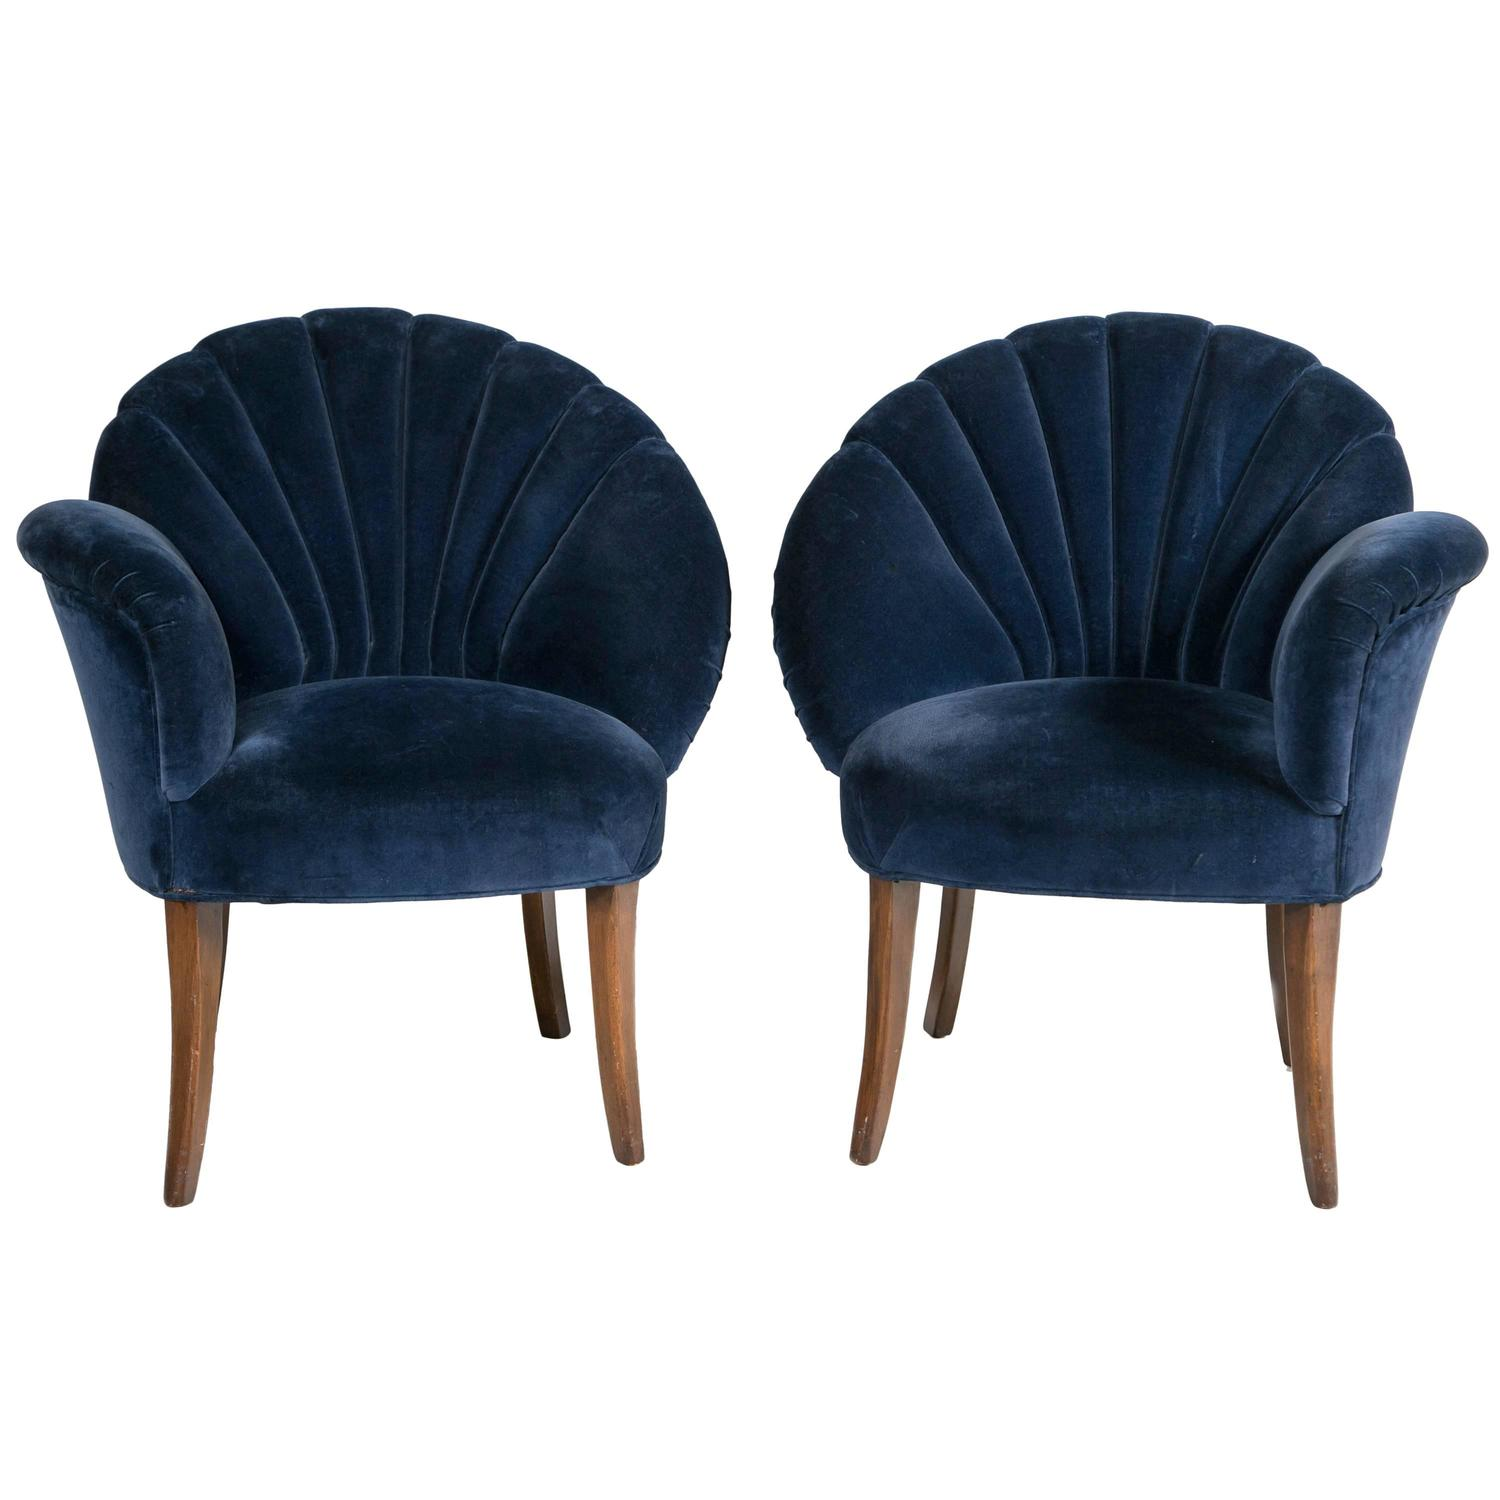 Artistic Chairs Pair Of Art Deco Velvet Chairs At 1stdibs